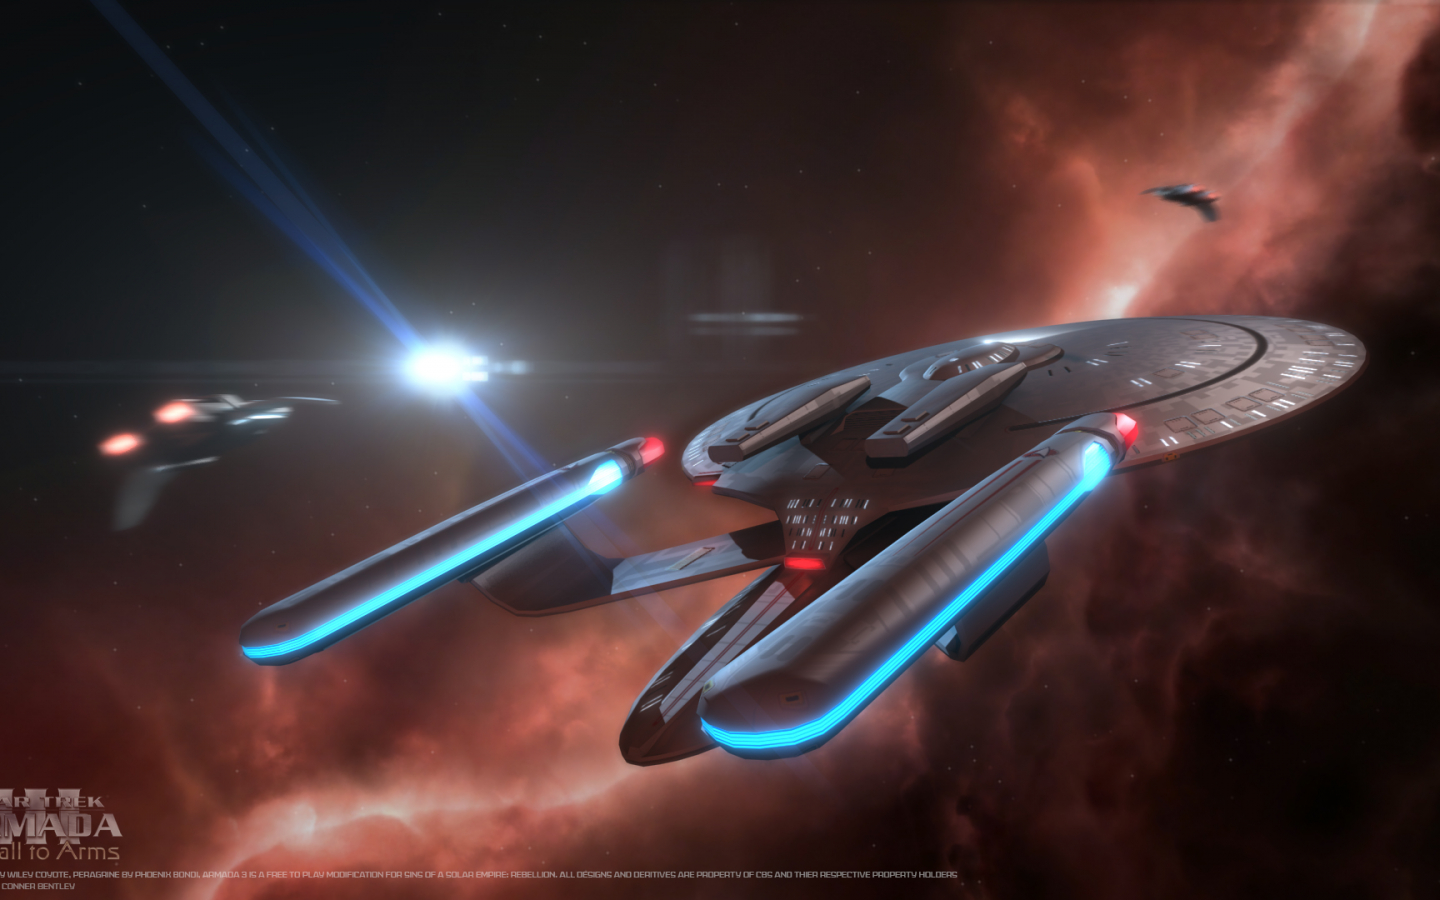 Free Download Wallpaper Image Star Trek Armada 3 Mod For Sins Of A